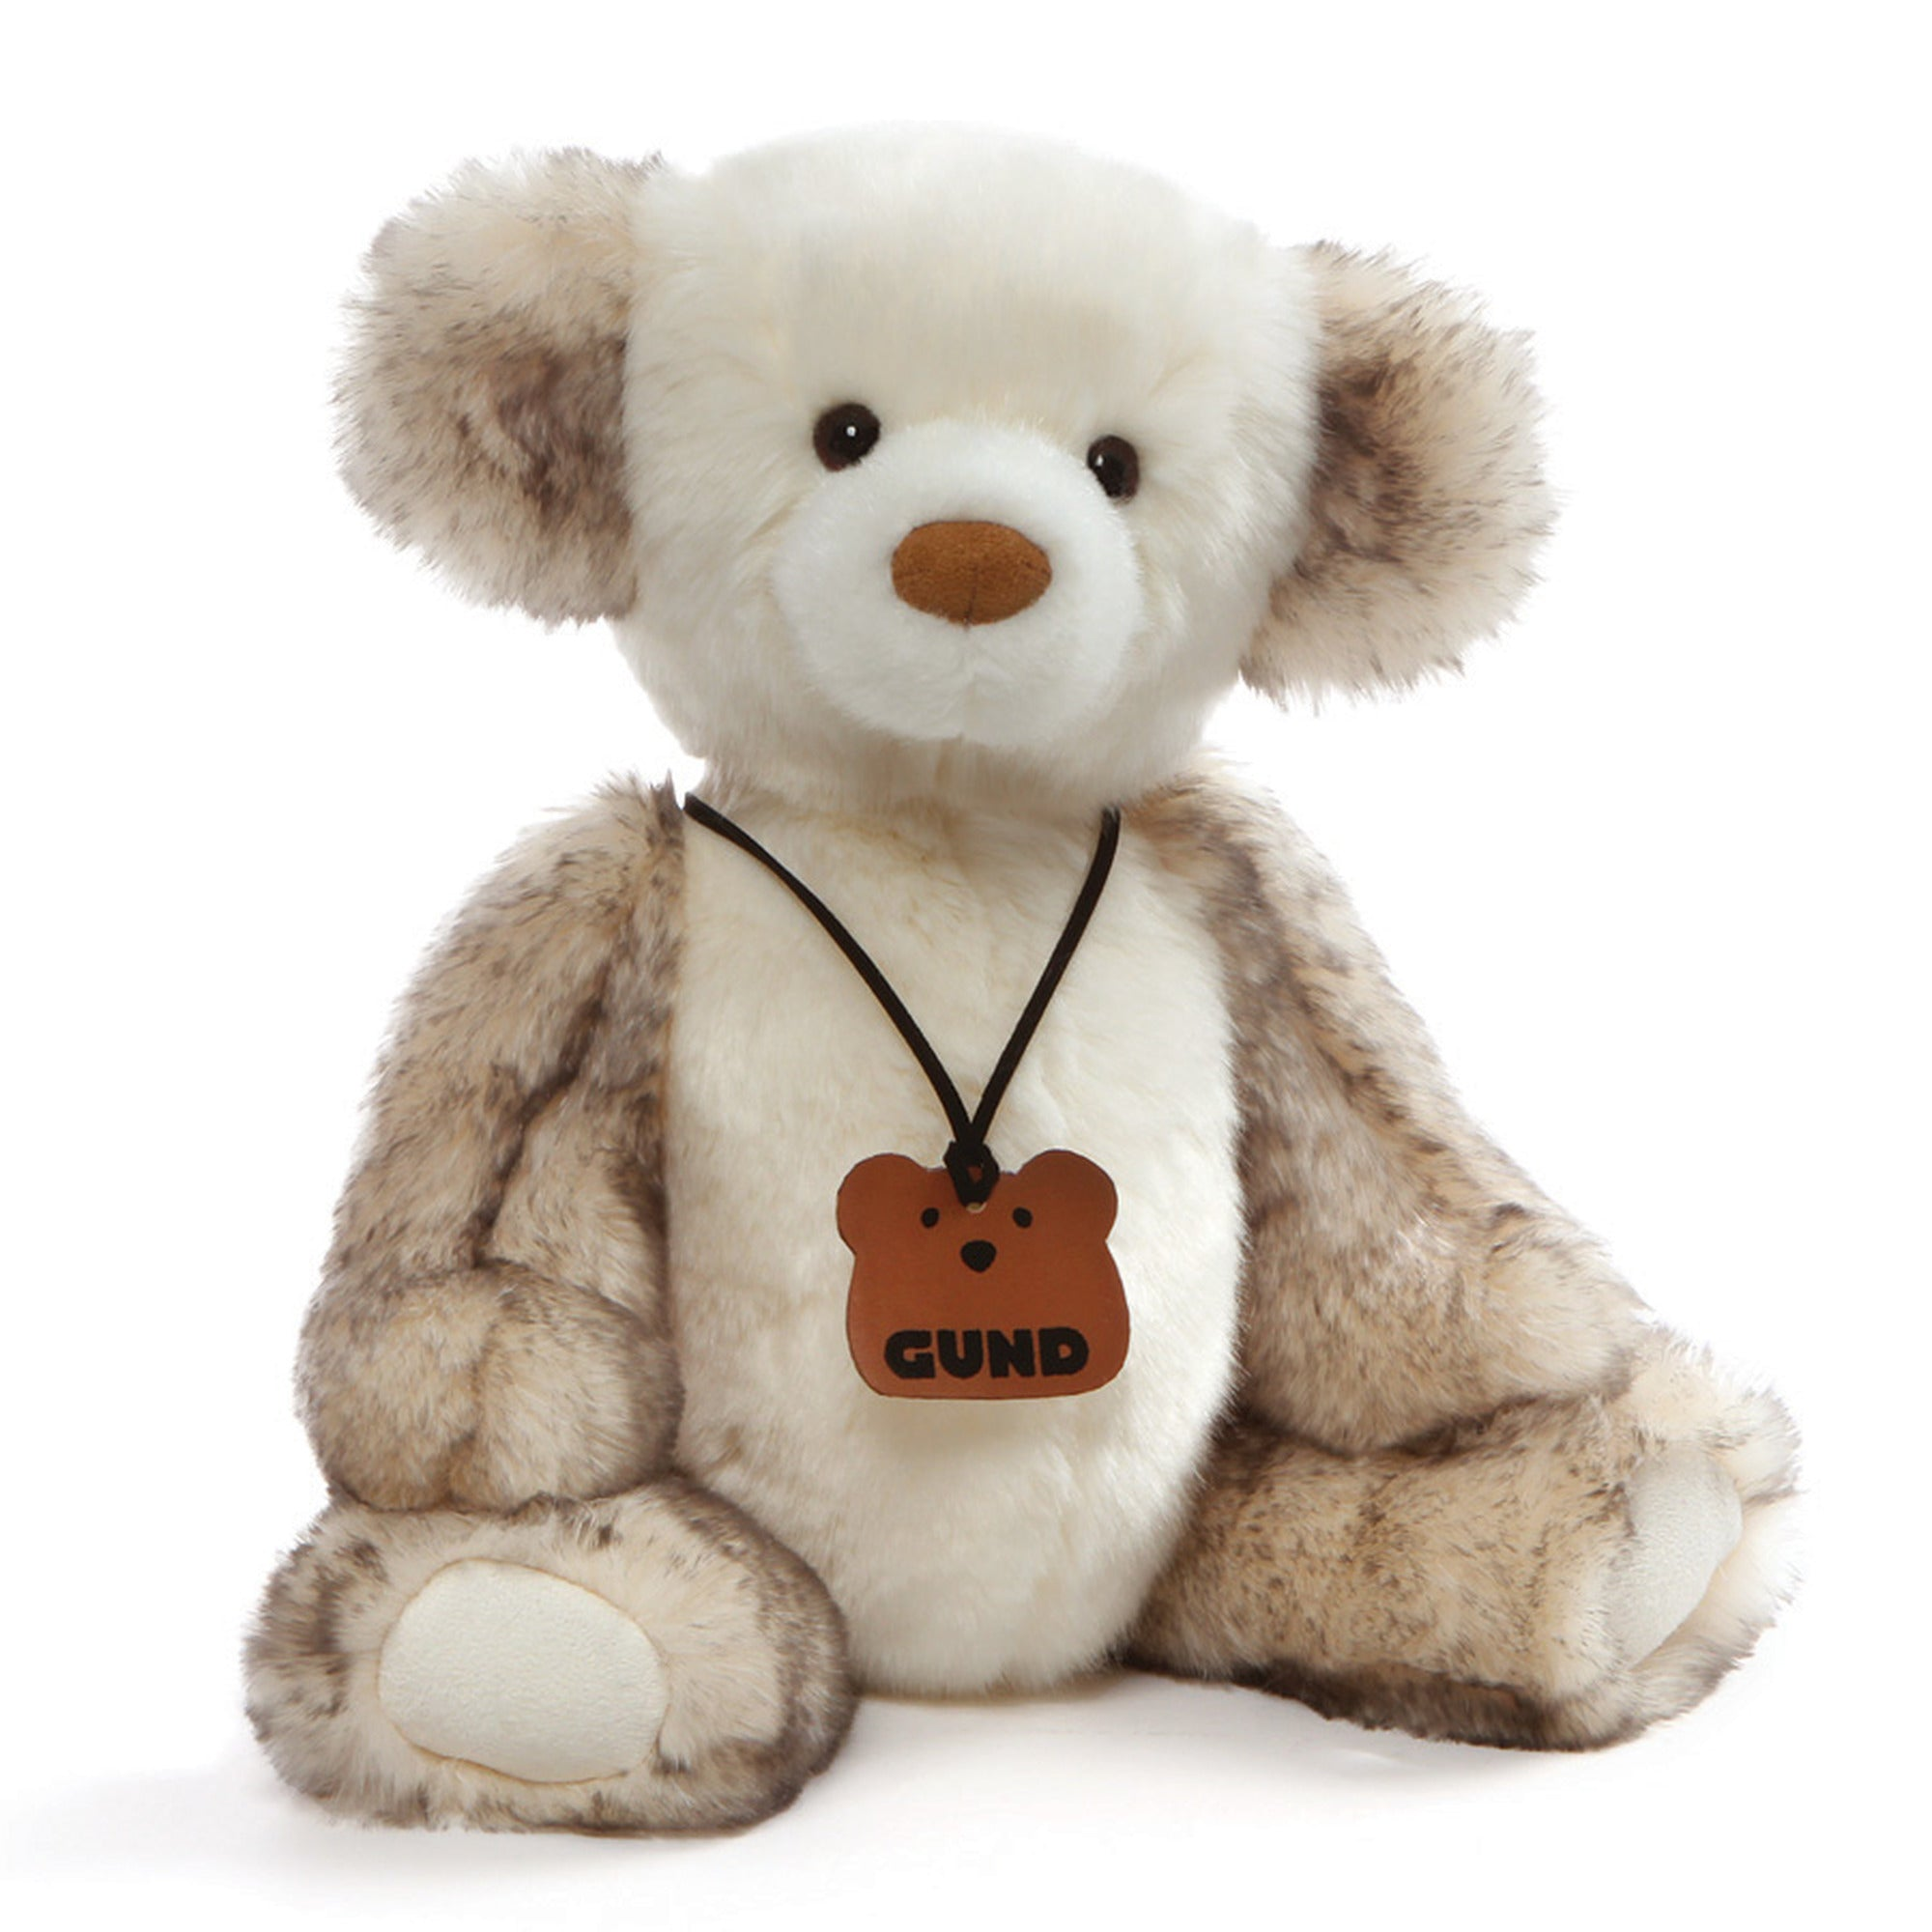 Gund - Archer Limited Edition, 14""